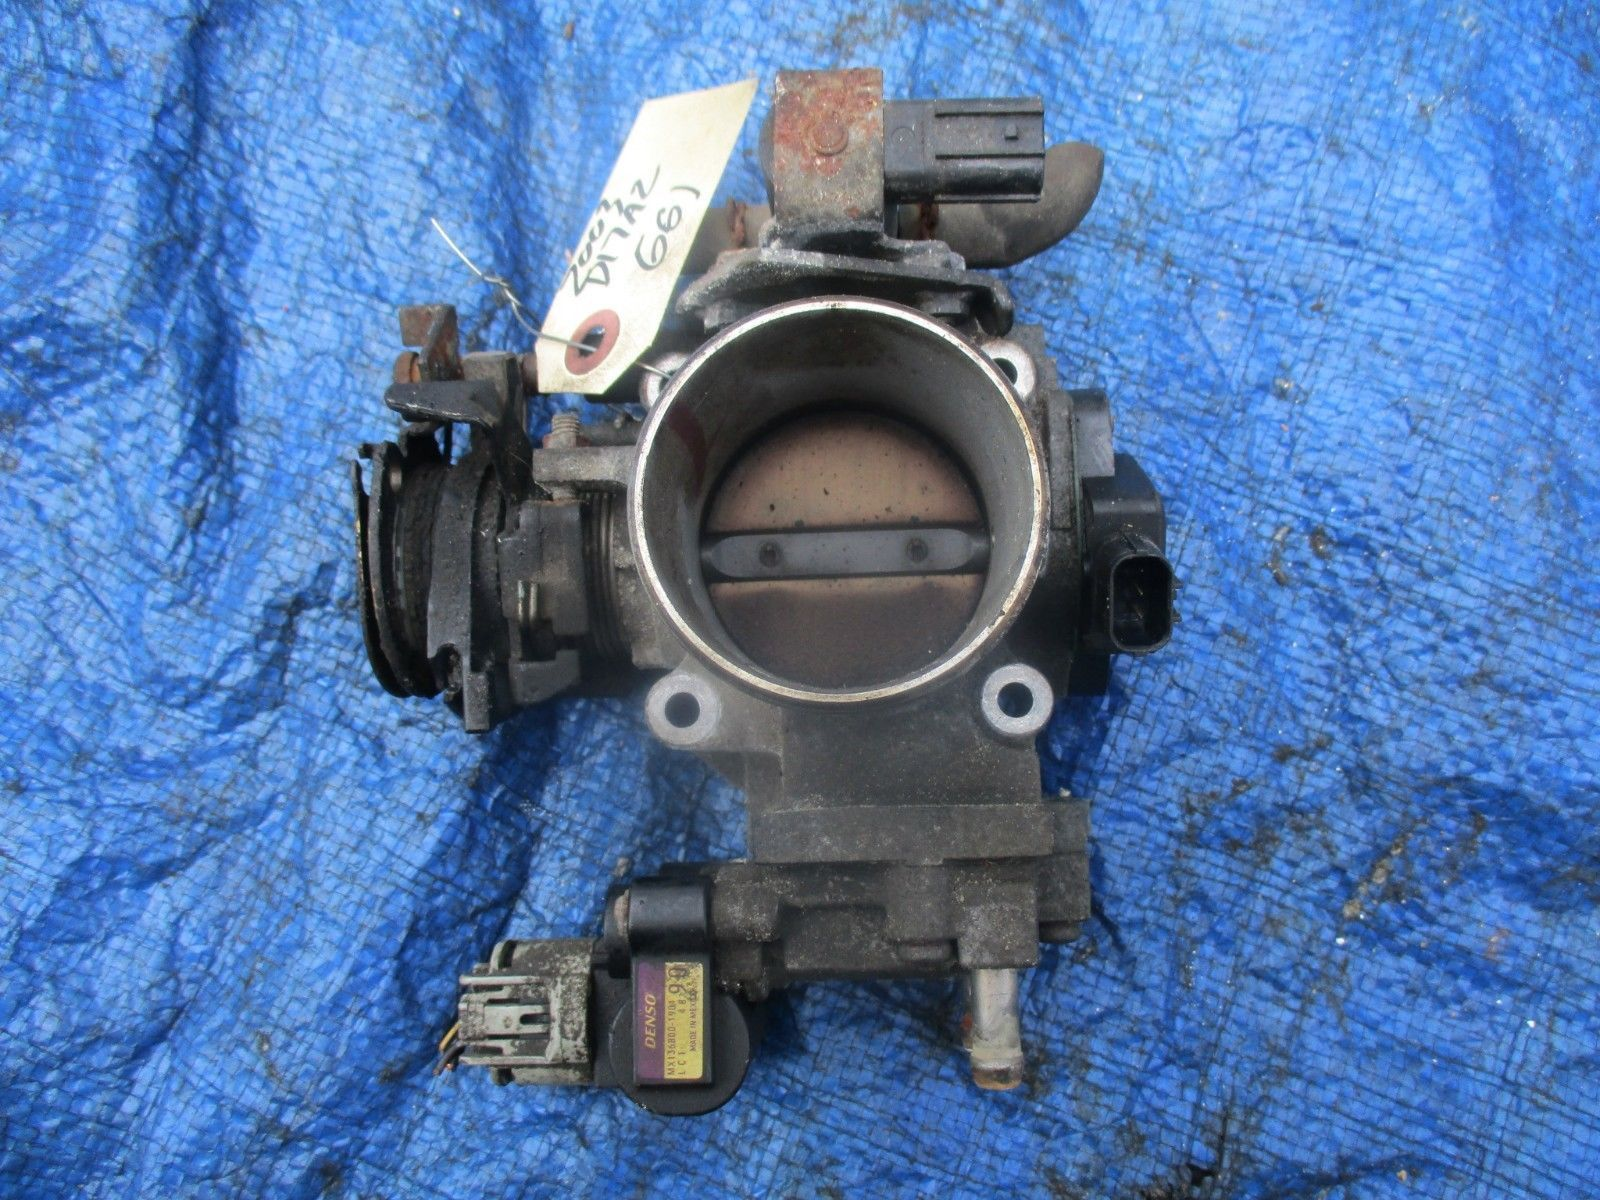 Primary image for 01-05 Honda Civic D17A2 VTEC throttle body engine motor D17 D17A1 SOHC OEM TPS